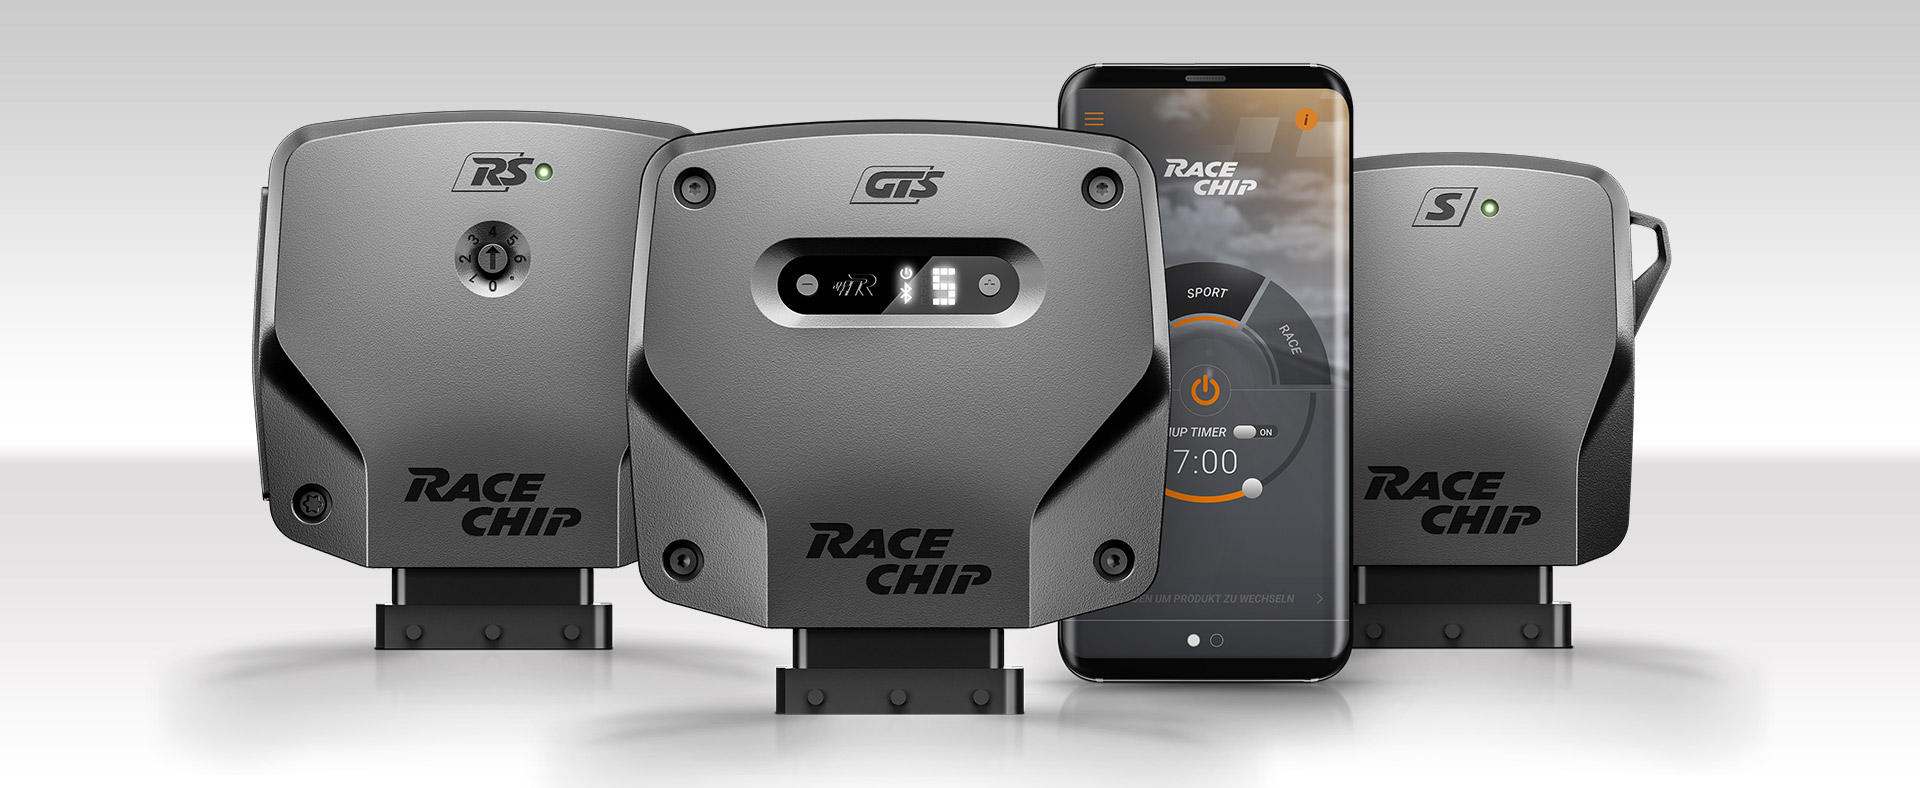 RaceChip_Productfamily